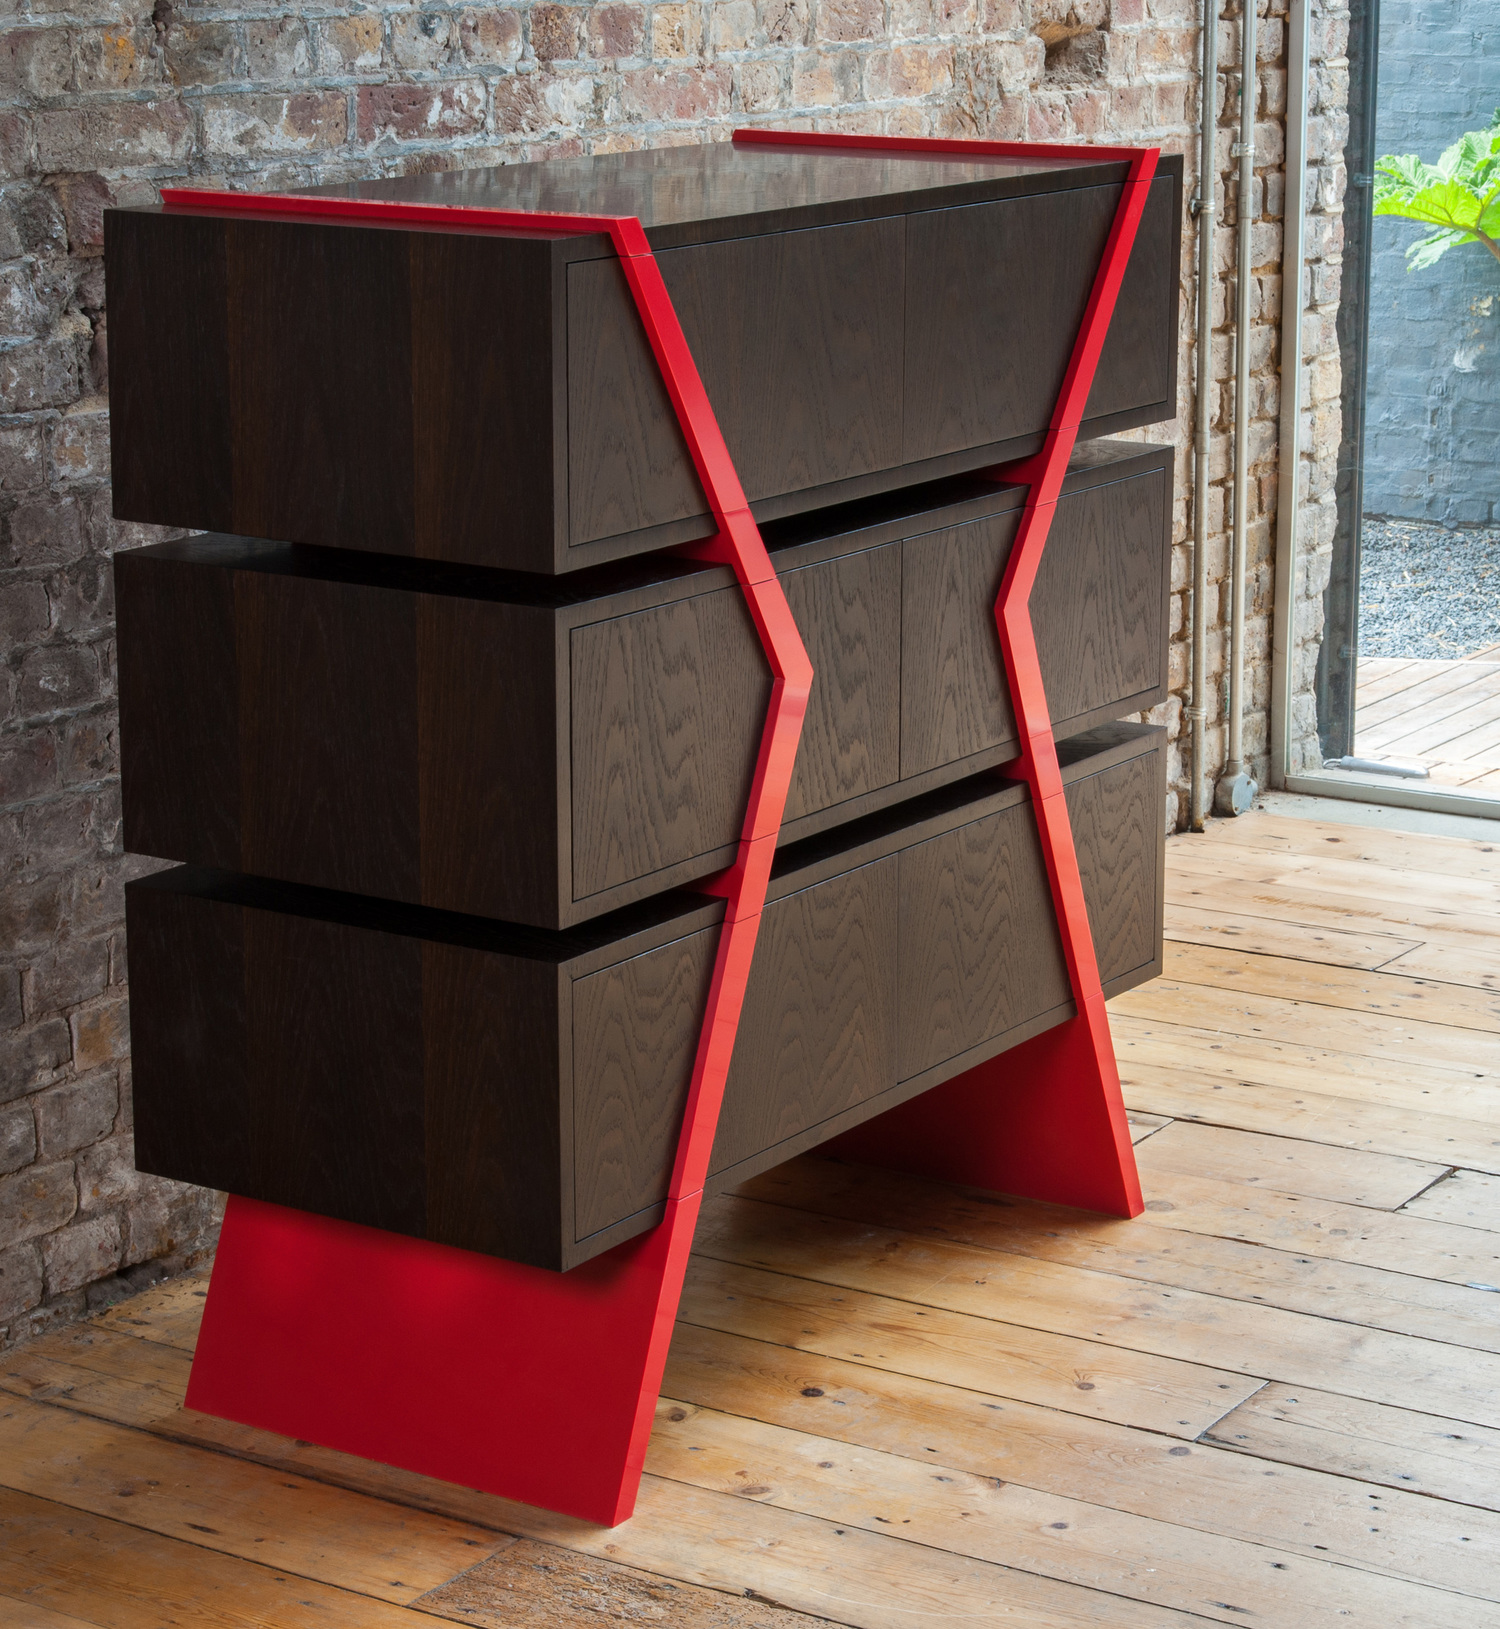 Pop/Deco 6 Drawer Chest - Push to open and soft close drawers.